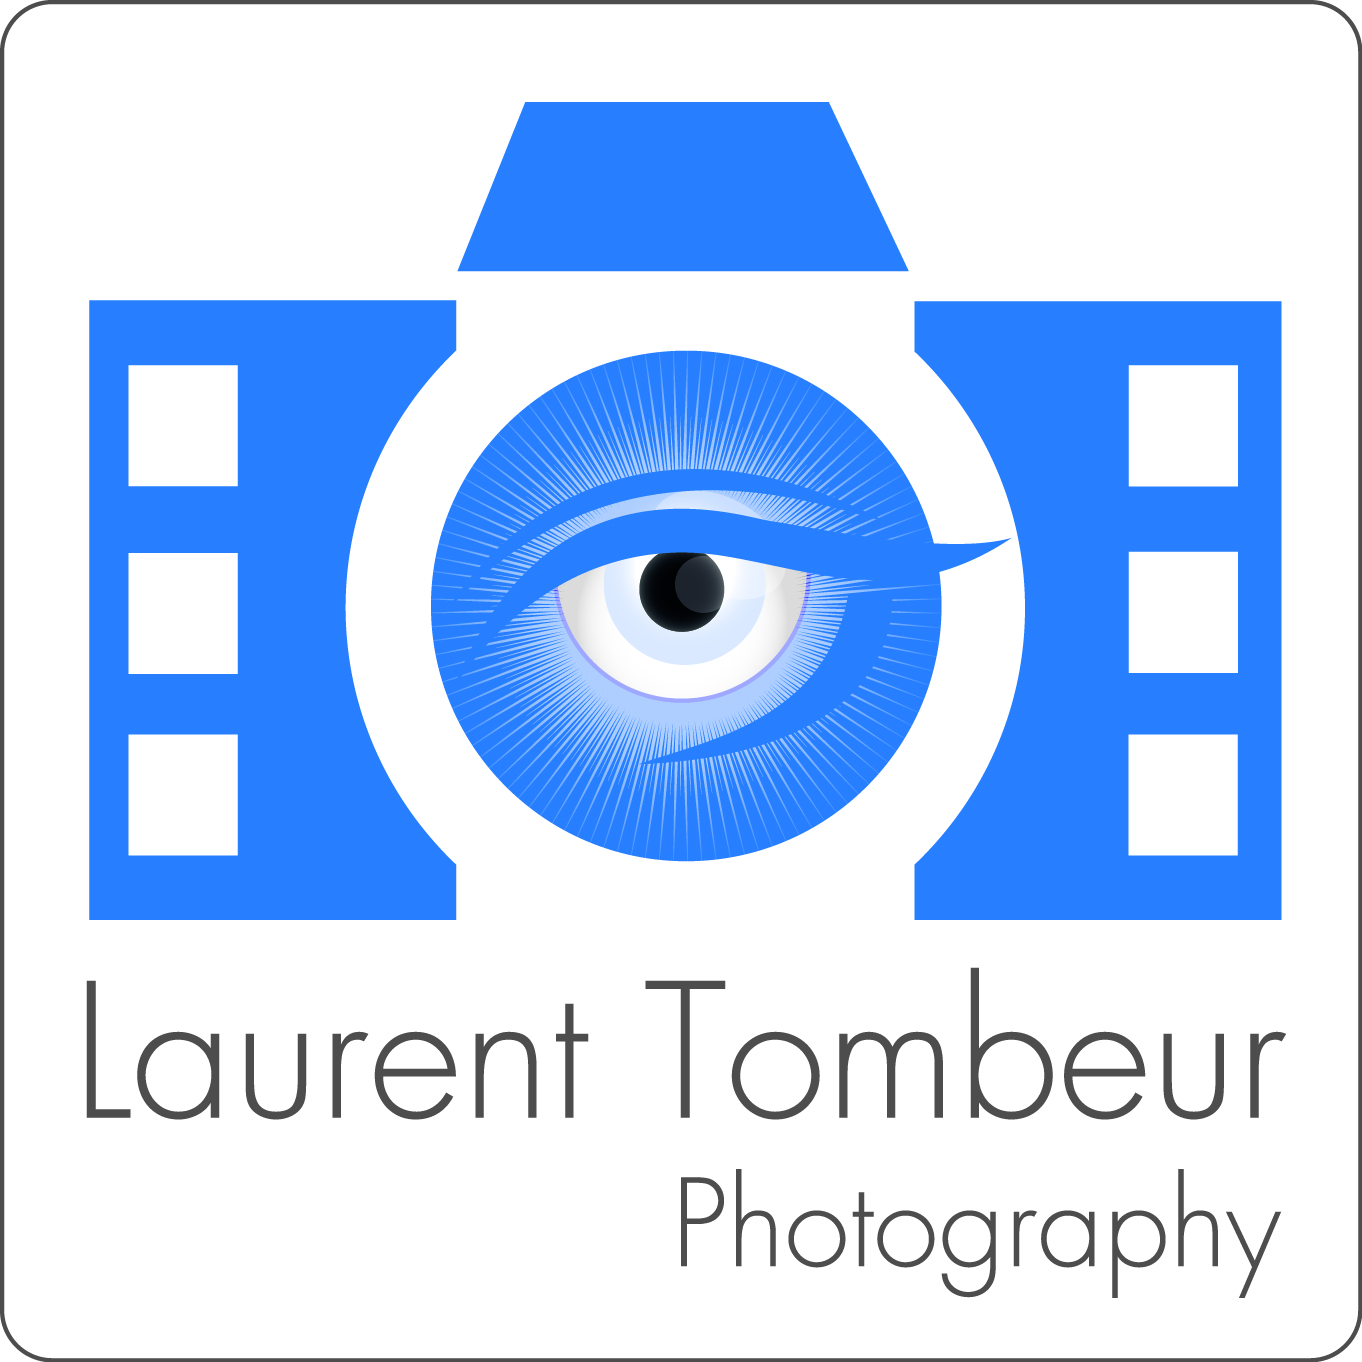 Laurent Tombeur Photography